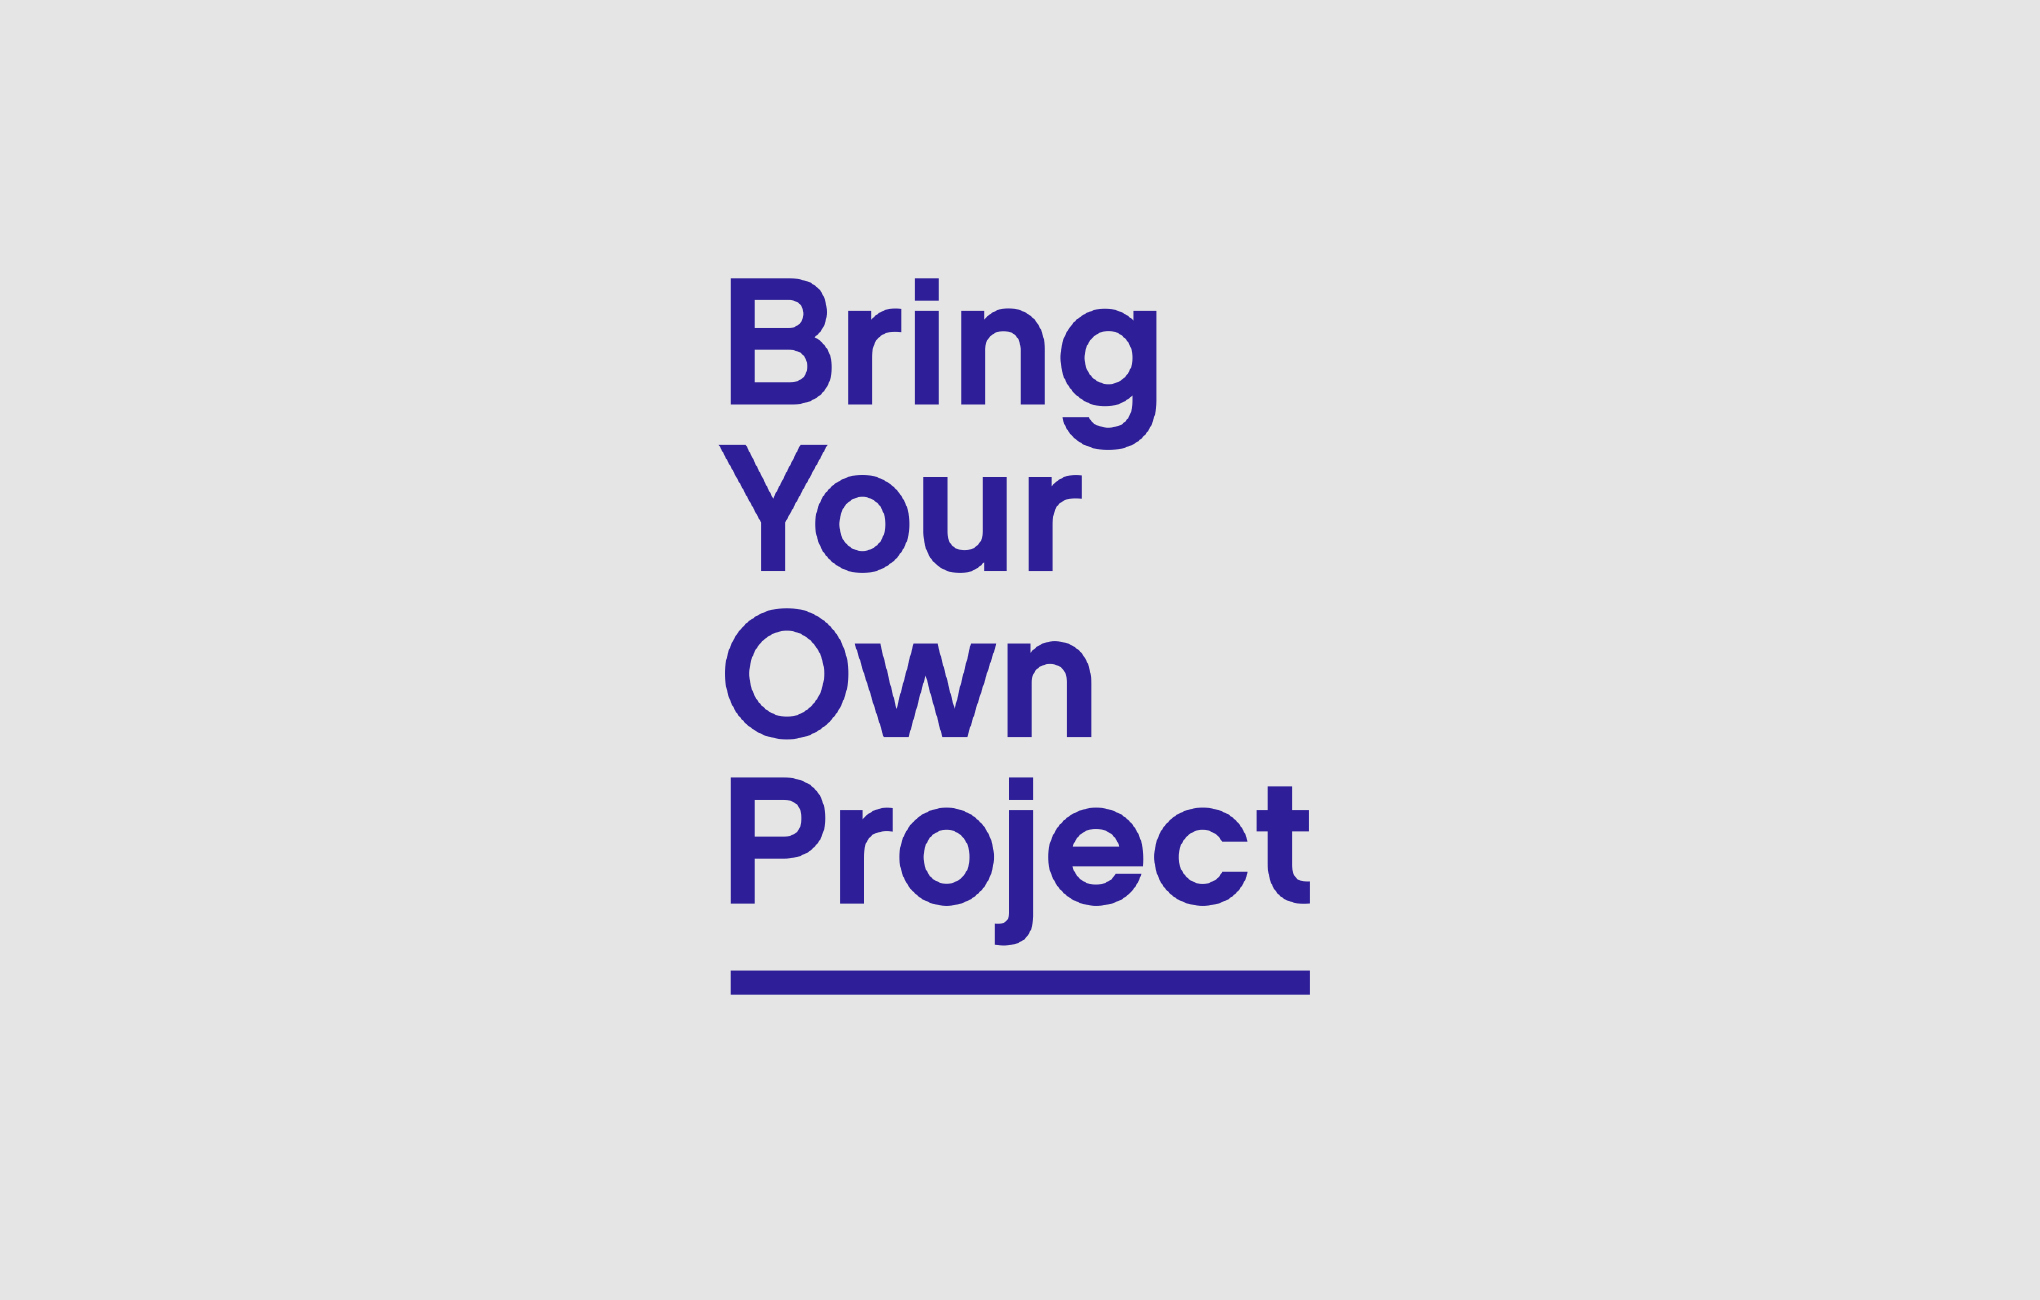 BYOP — Bring Your Own Project